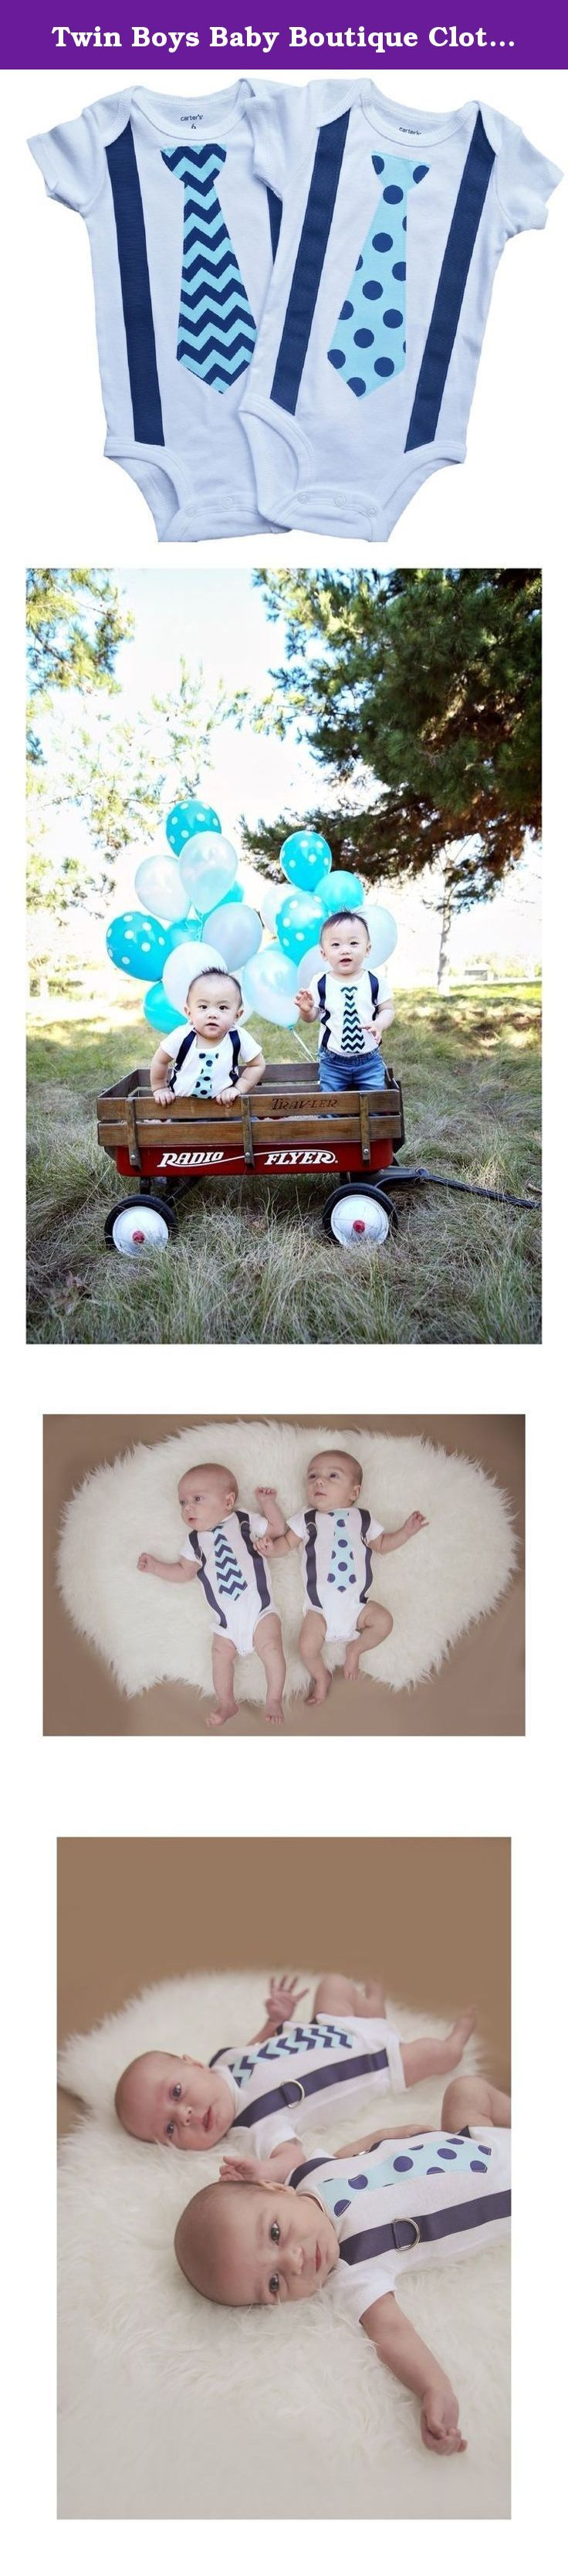 Twin Boys Baby Boutique Clothing Navy Aqua Duo by Perfect Pairz. Boutique wear for baby boy twins. Designed by a twin mom for twin boys.